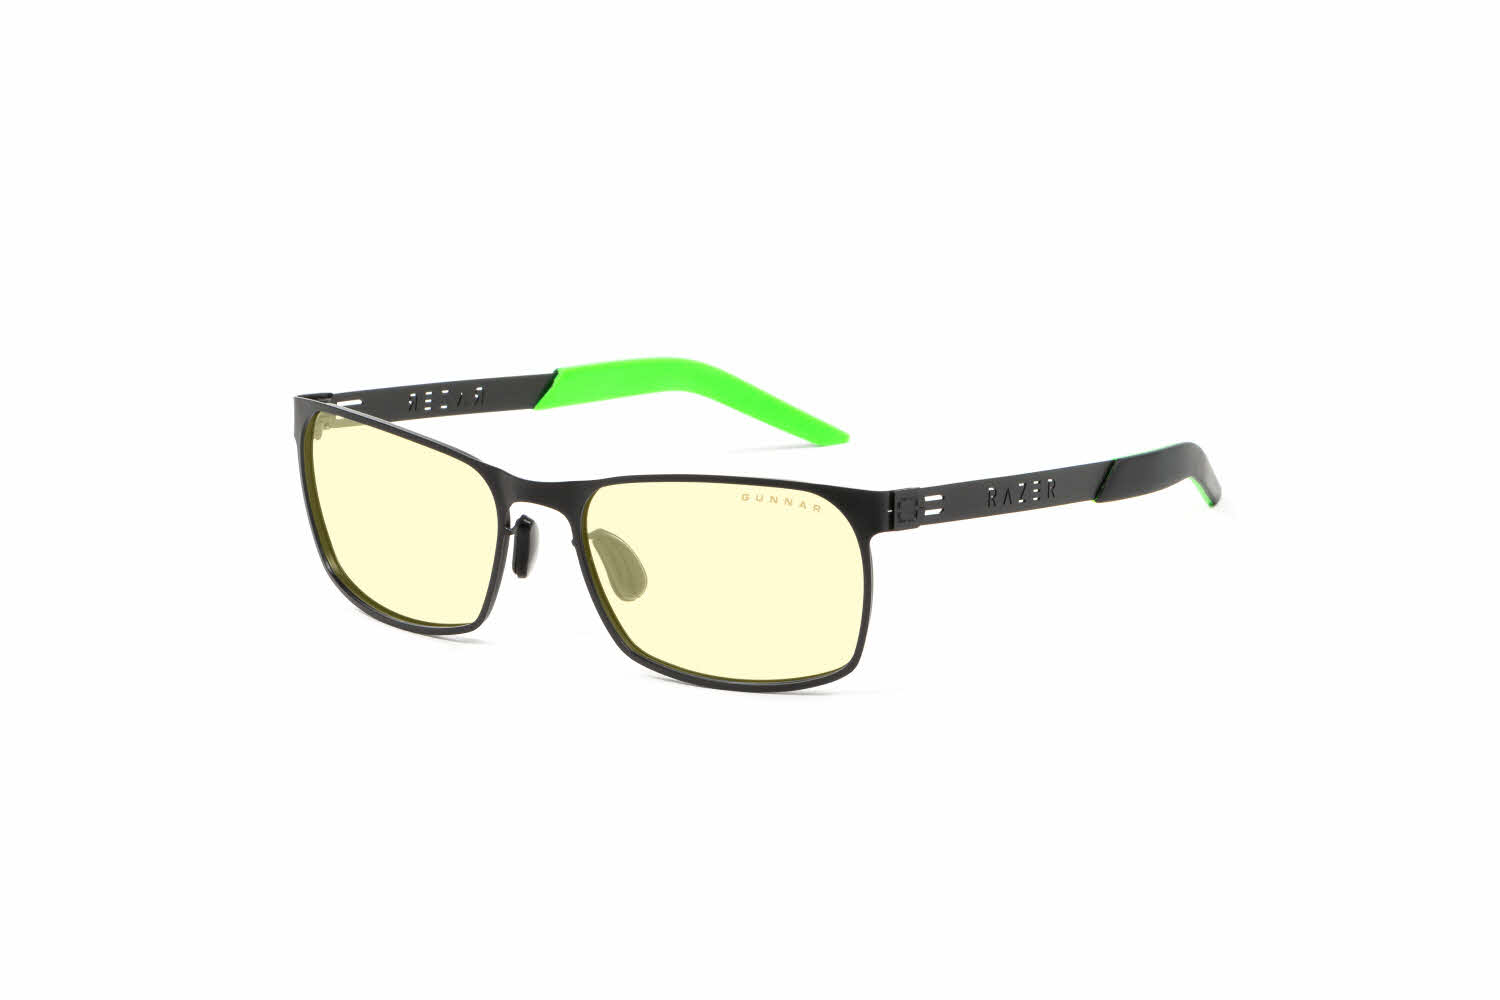 Gunnar FPS by Razer Prescription Sunglasses